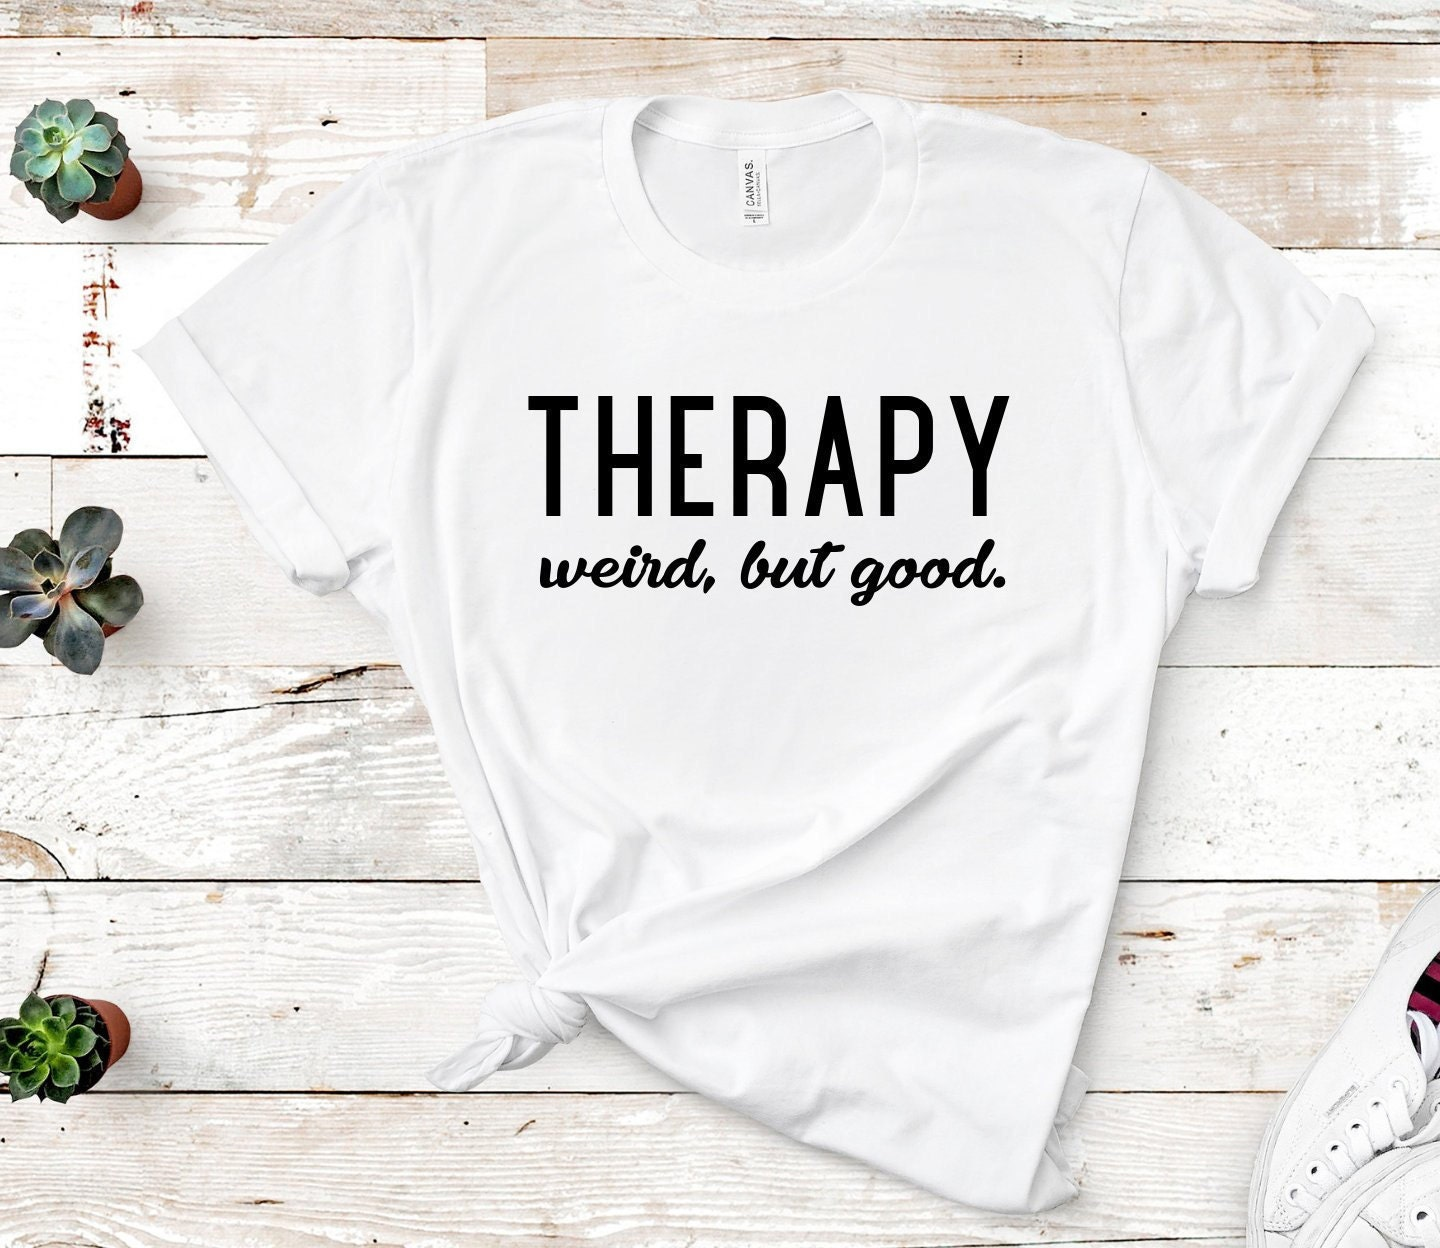 Therapy. Weird, but good.